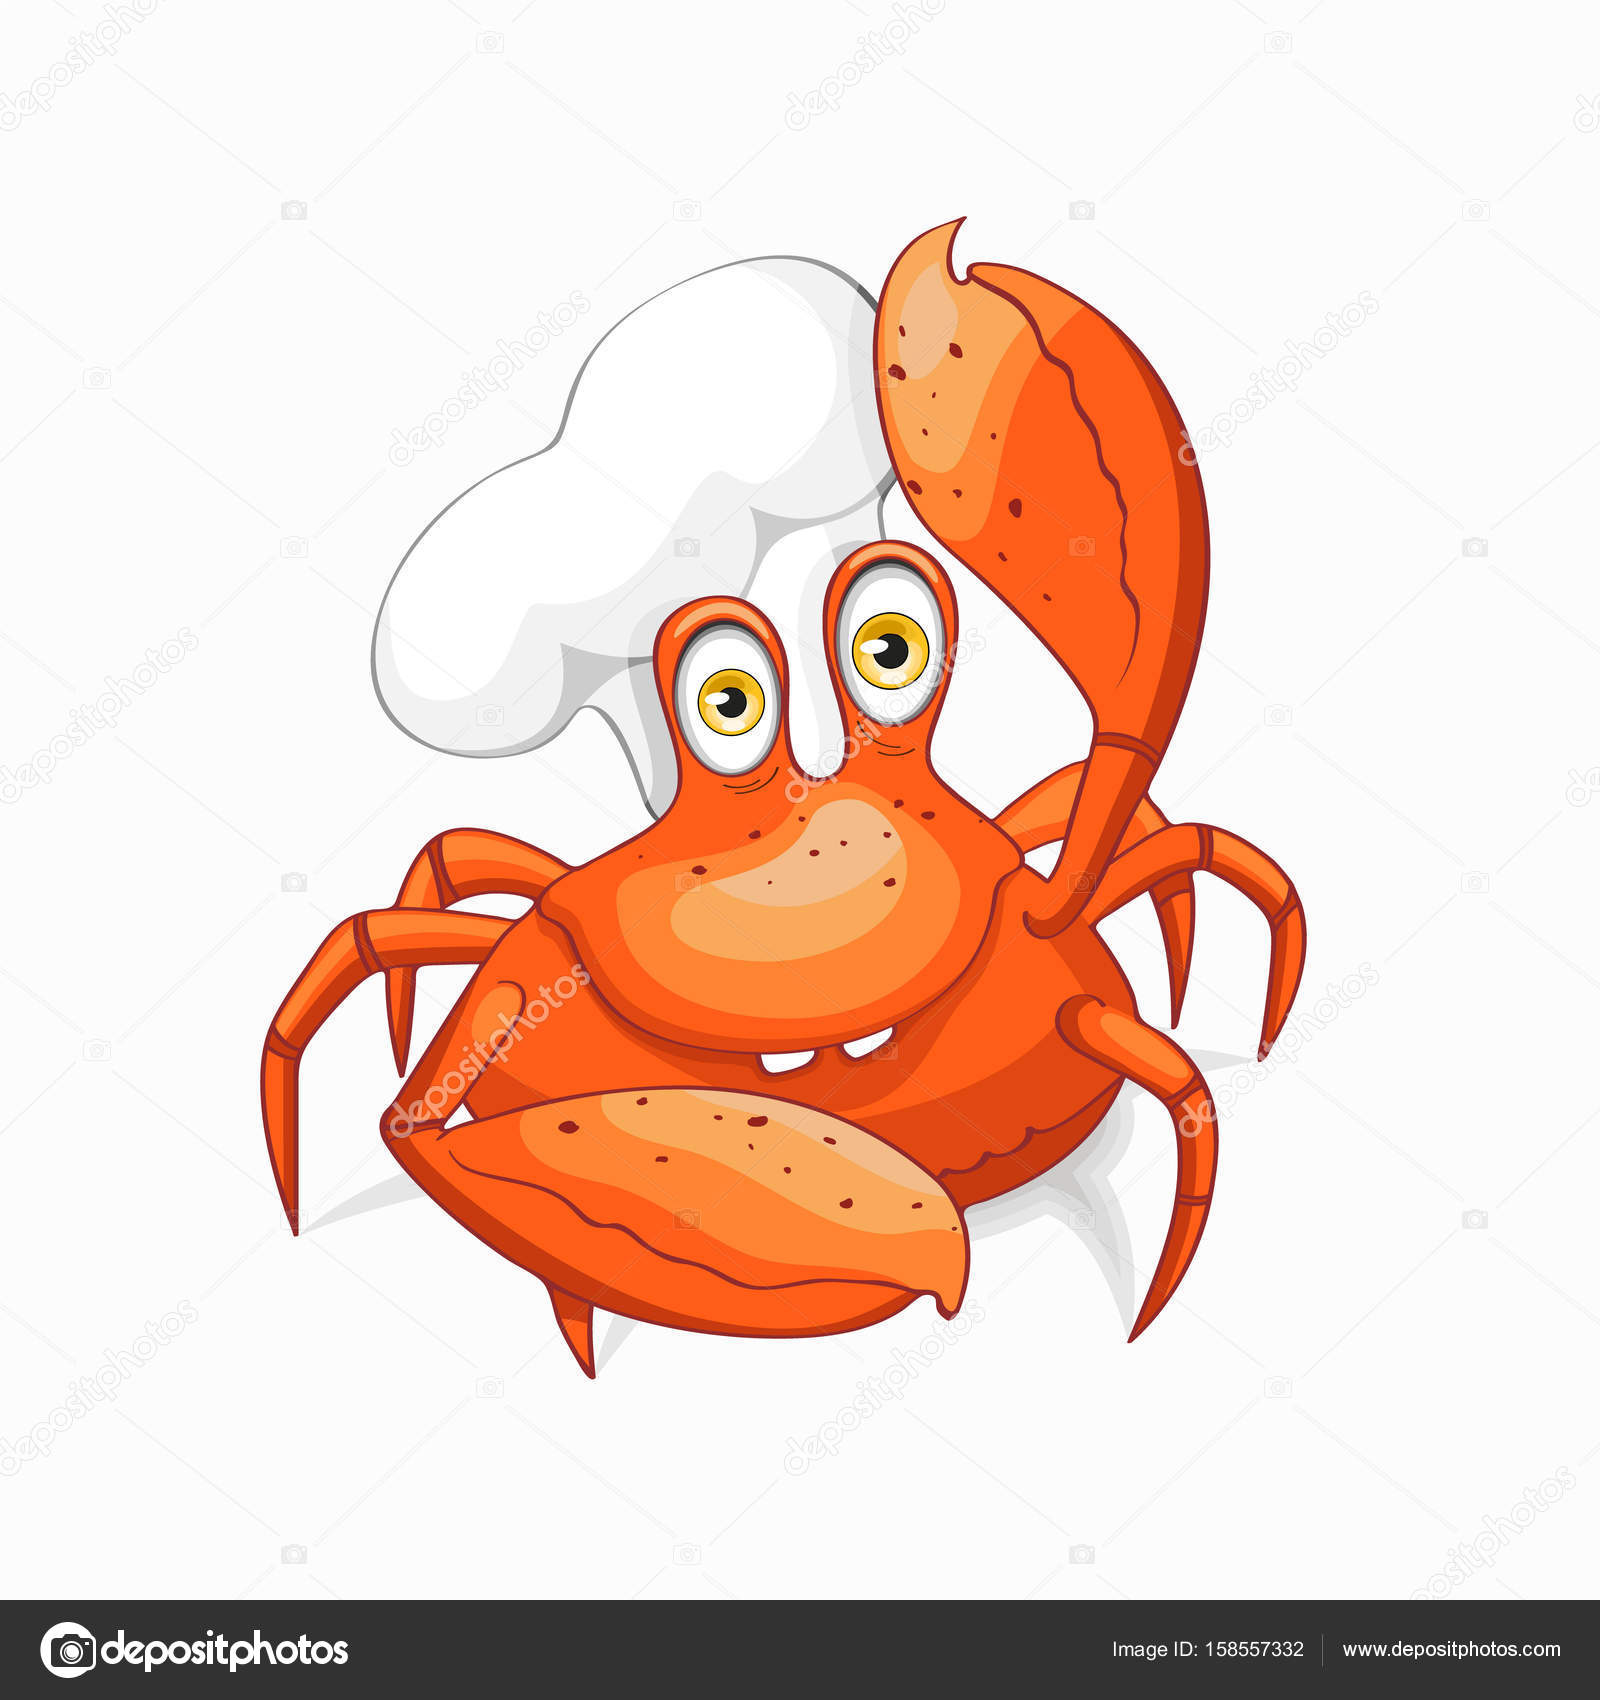 Crab illustration, Dungeness crab Seafood, Drawing crabs material ...   1700x1600